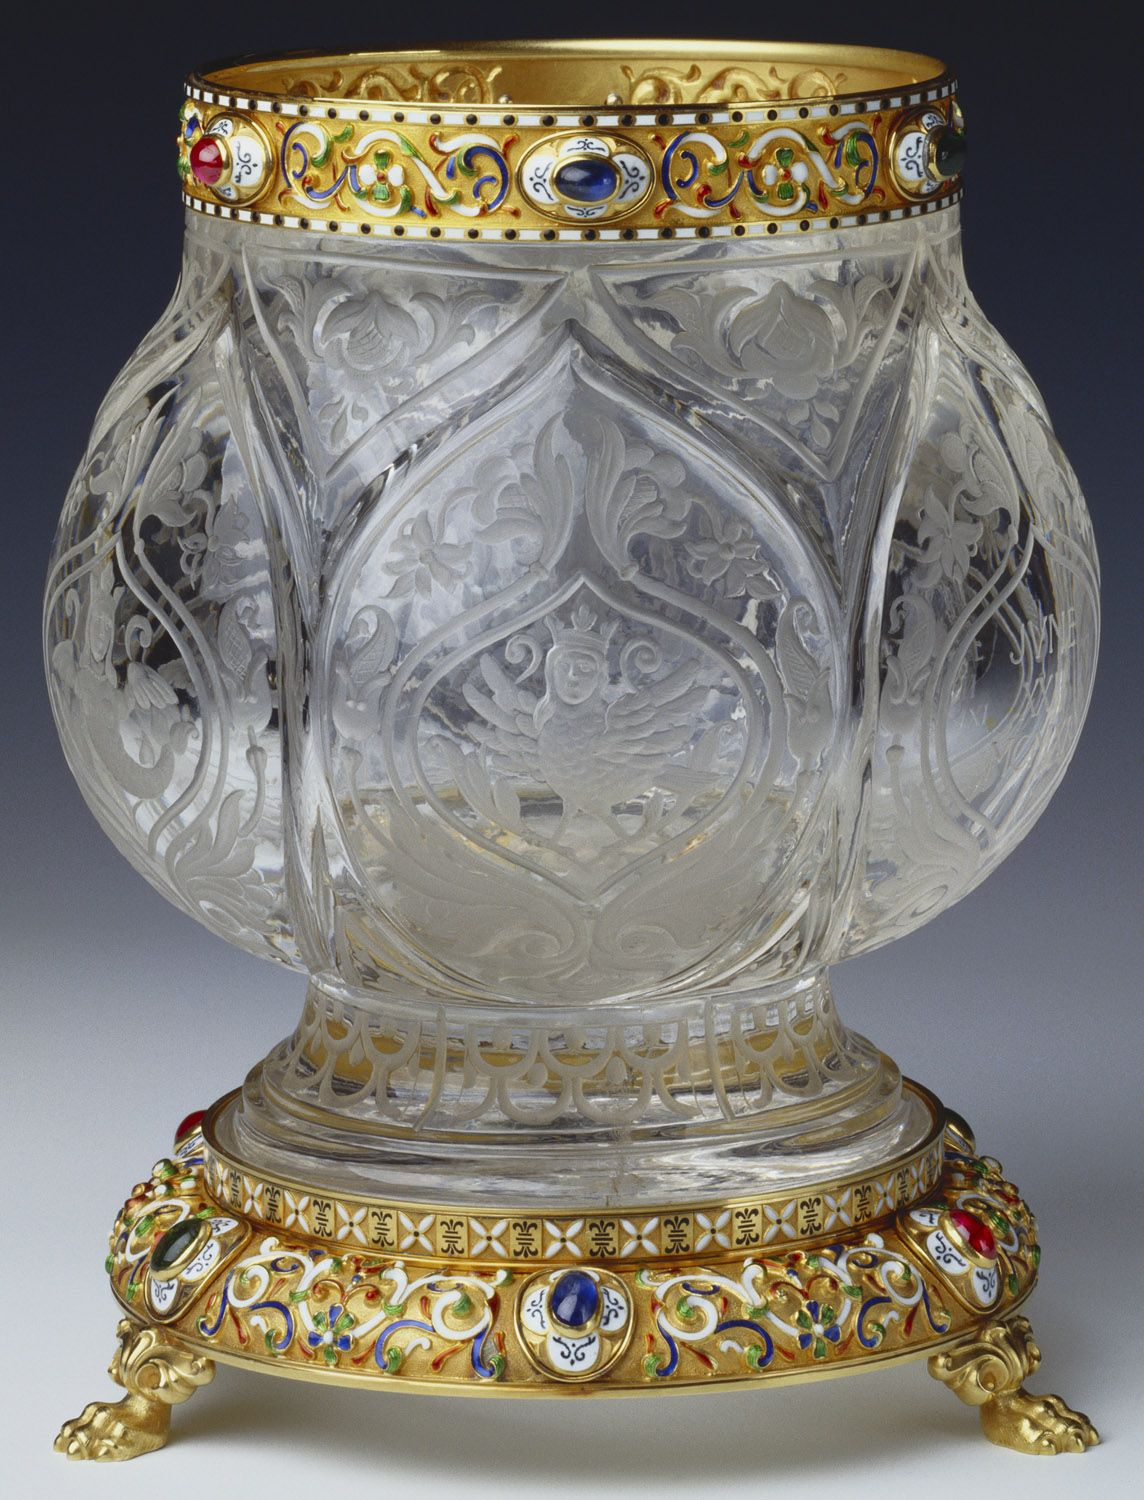 Rock crystal vase by mikhail evlampievich perkhin for faberge rock crystal vase by mikhail evlampievich perkhin for faberge circa 1903 rock crystal gold reviewsmspy